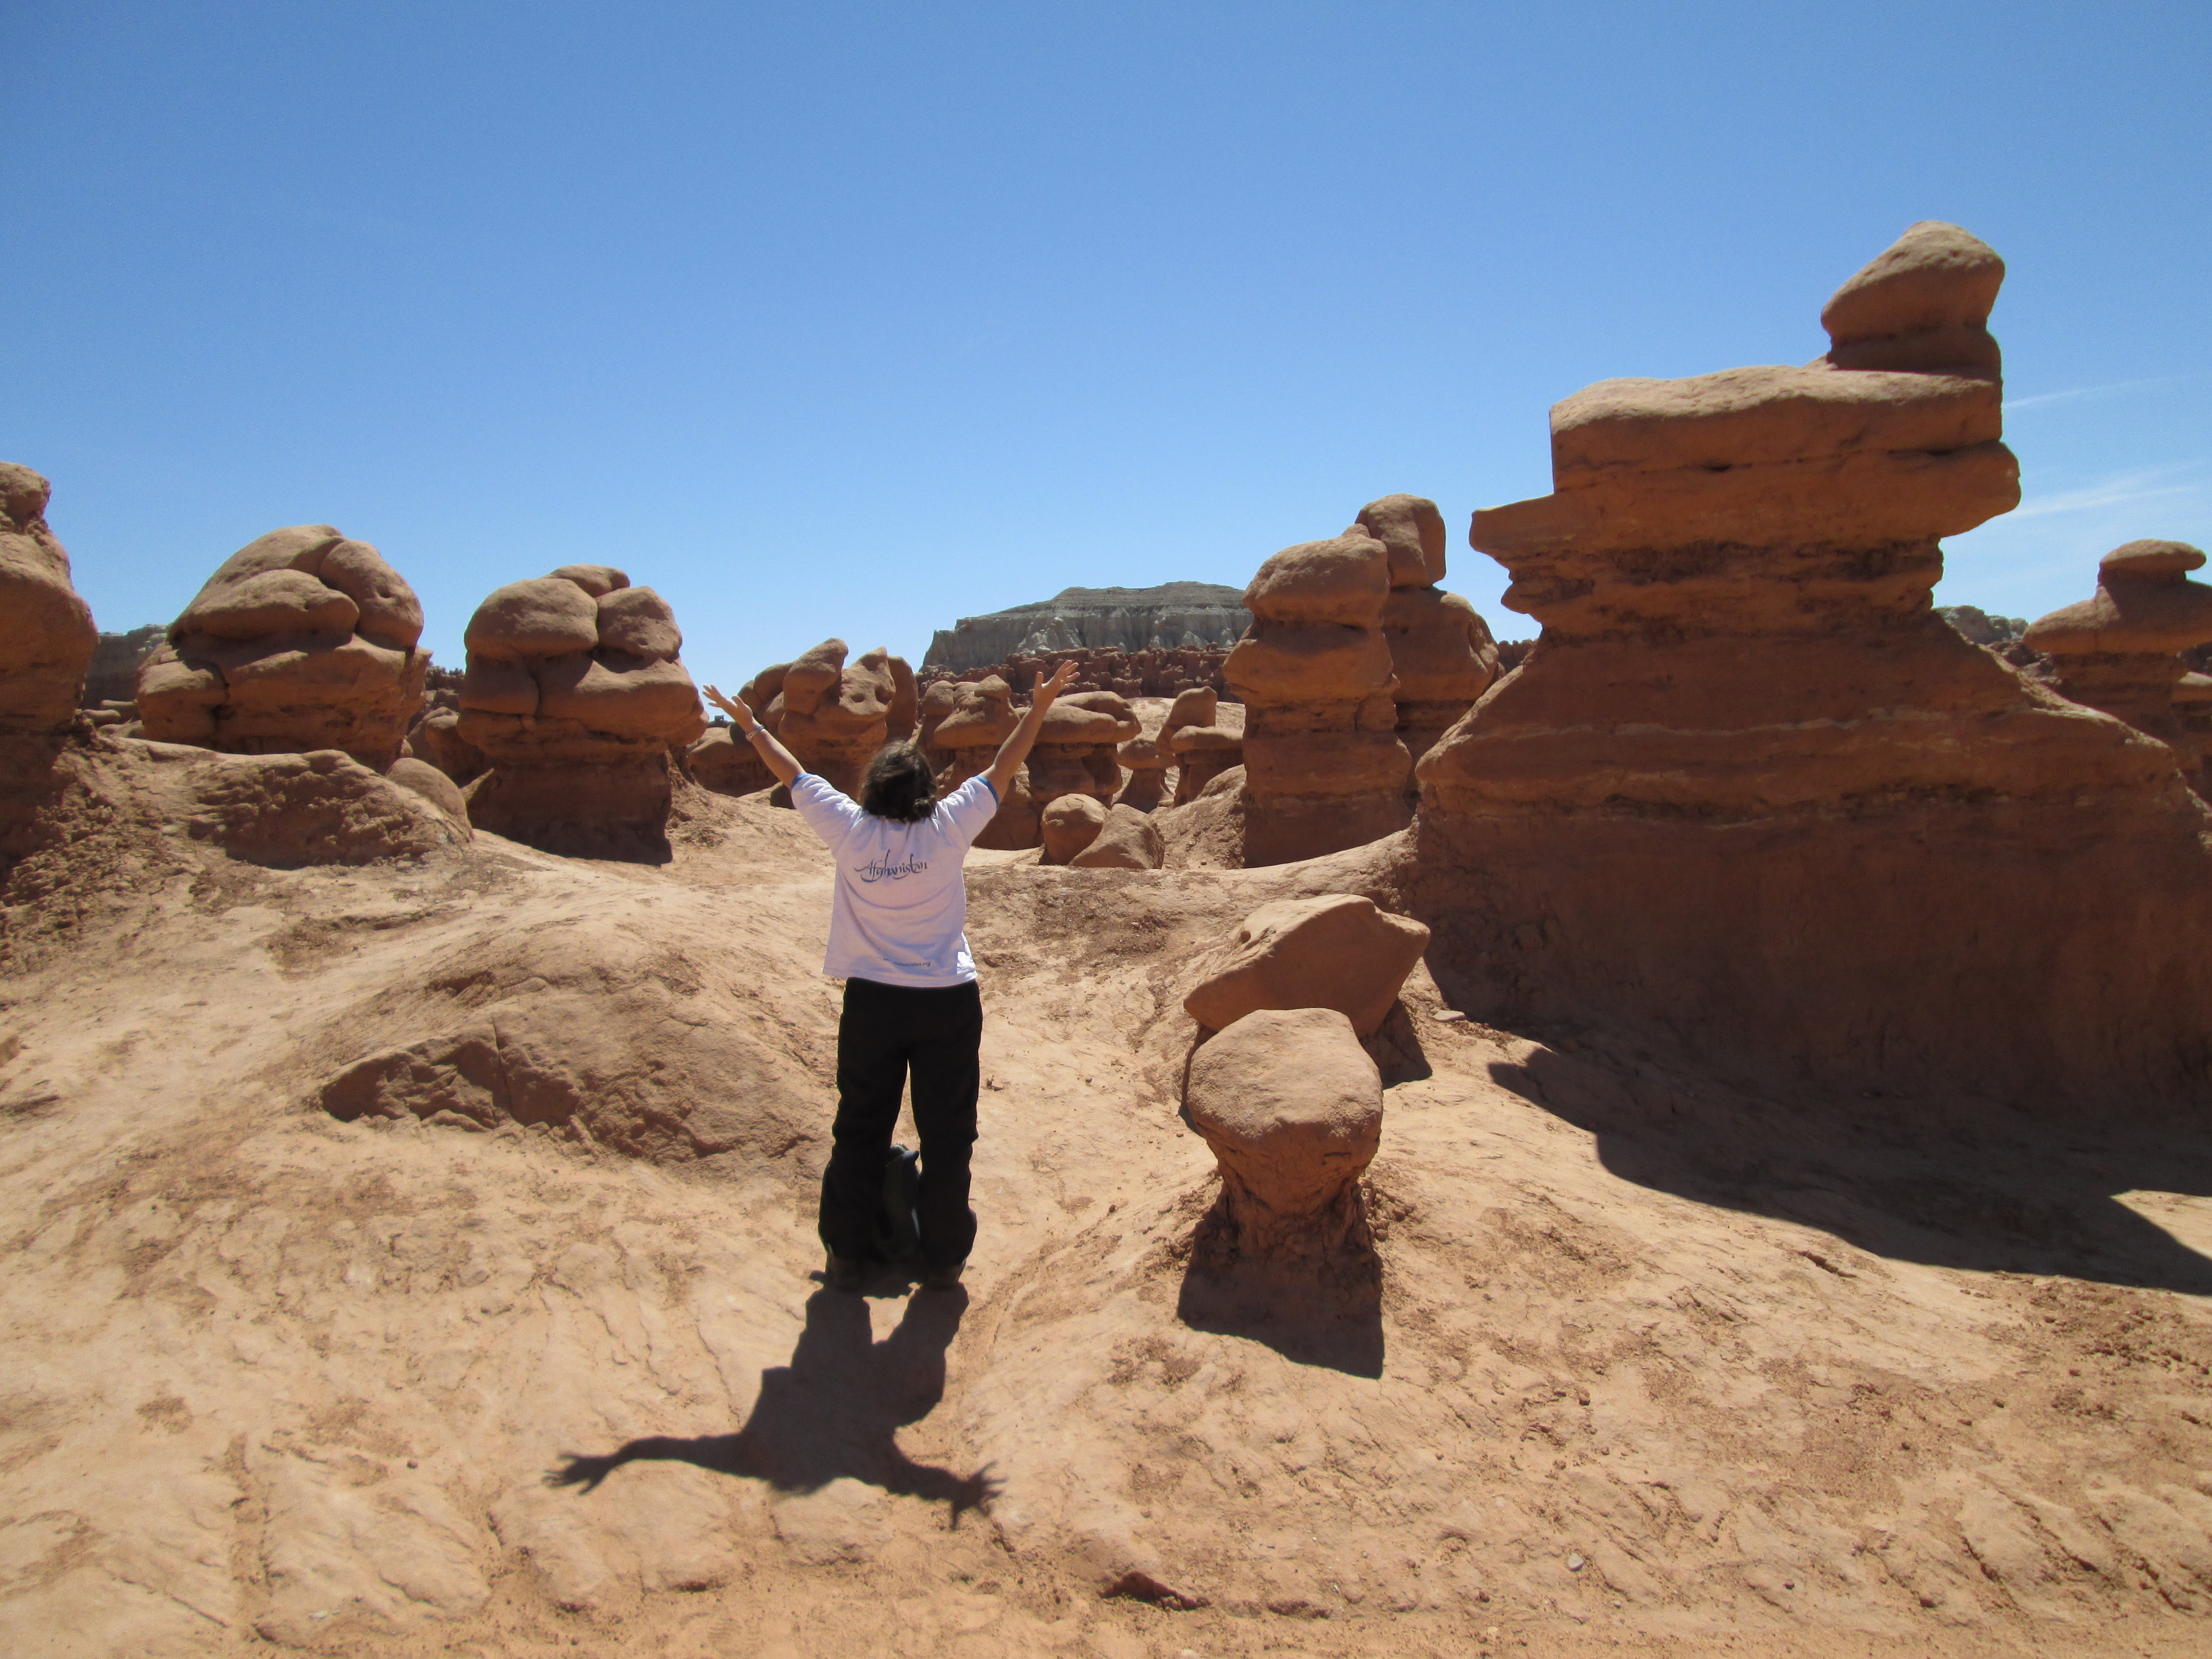 Me in my Afghanistan t-shirt at Goblin Valley